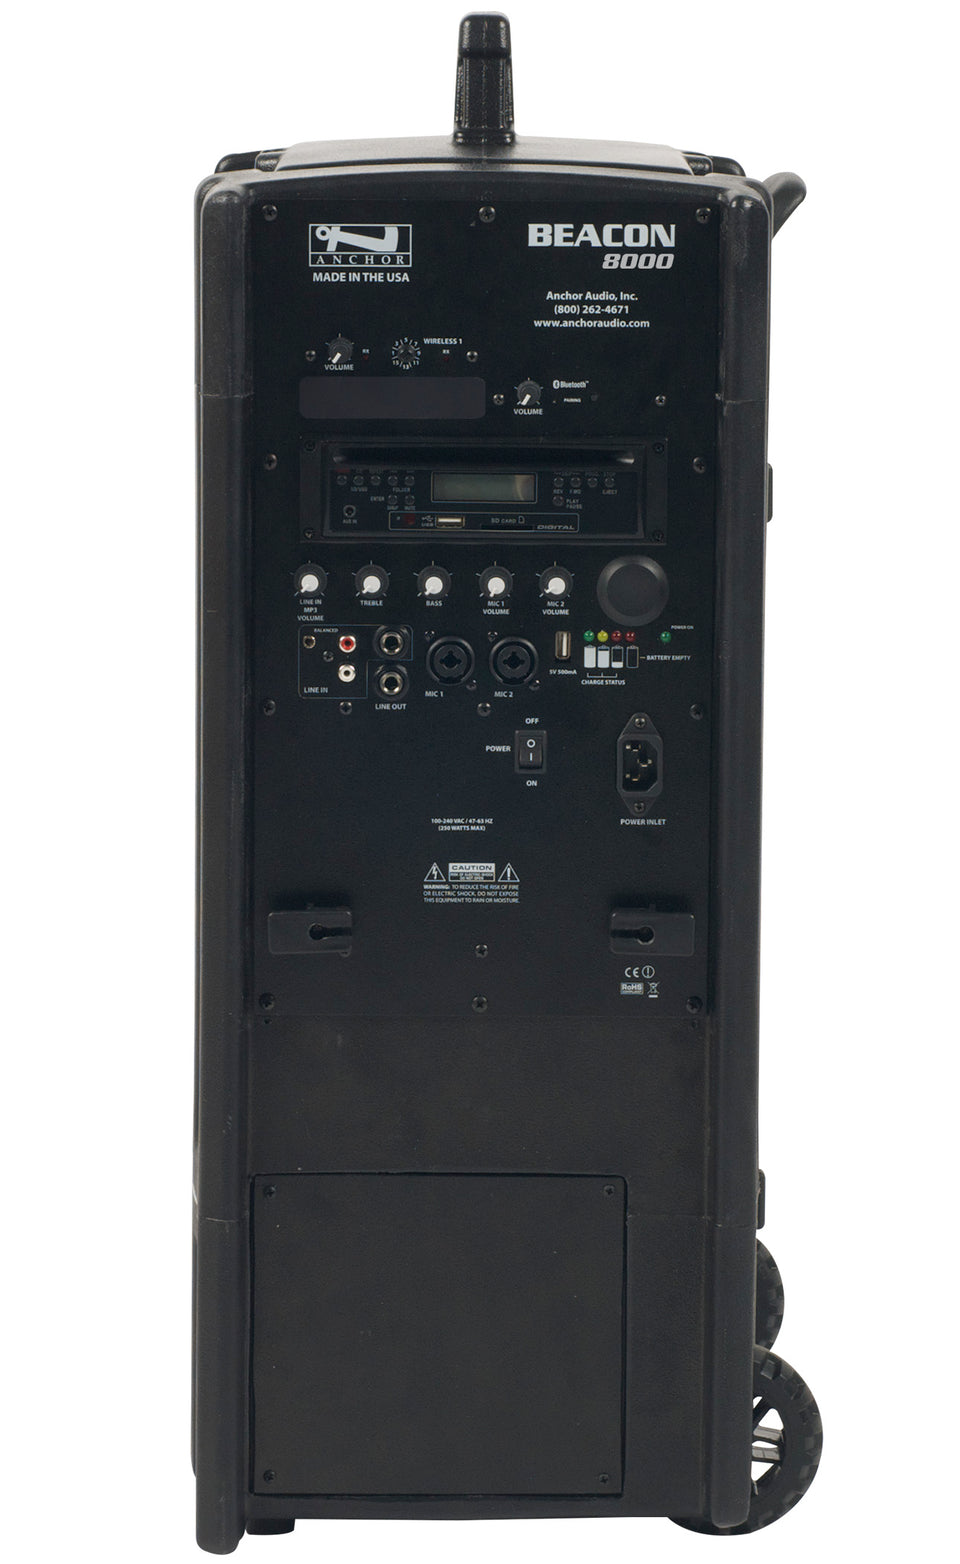 Anchor Audio Beacon Line Array System with built-in Bluetooth, CD/MP3 combo player, and two wireless receivers